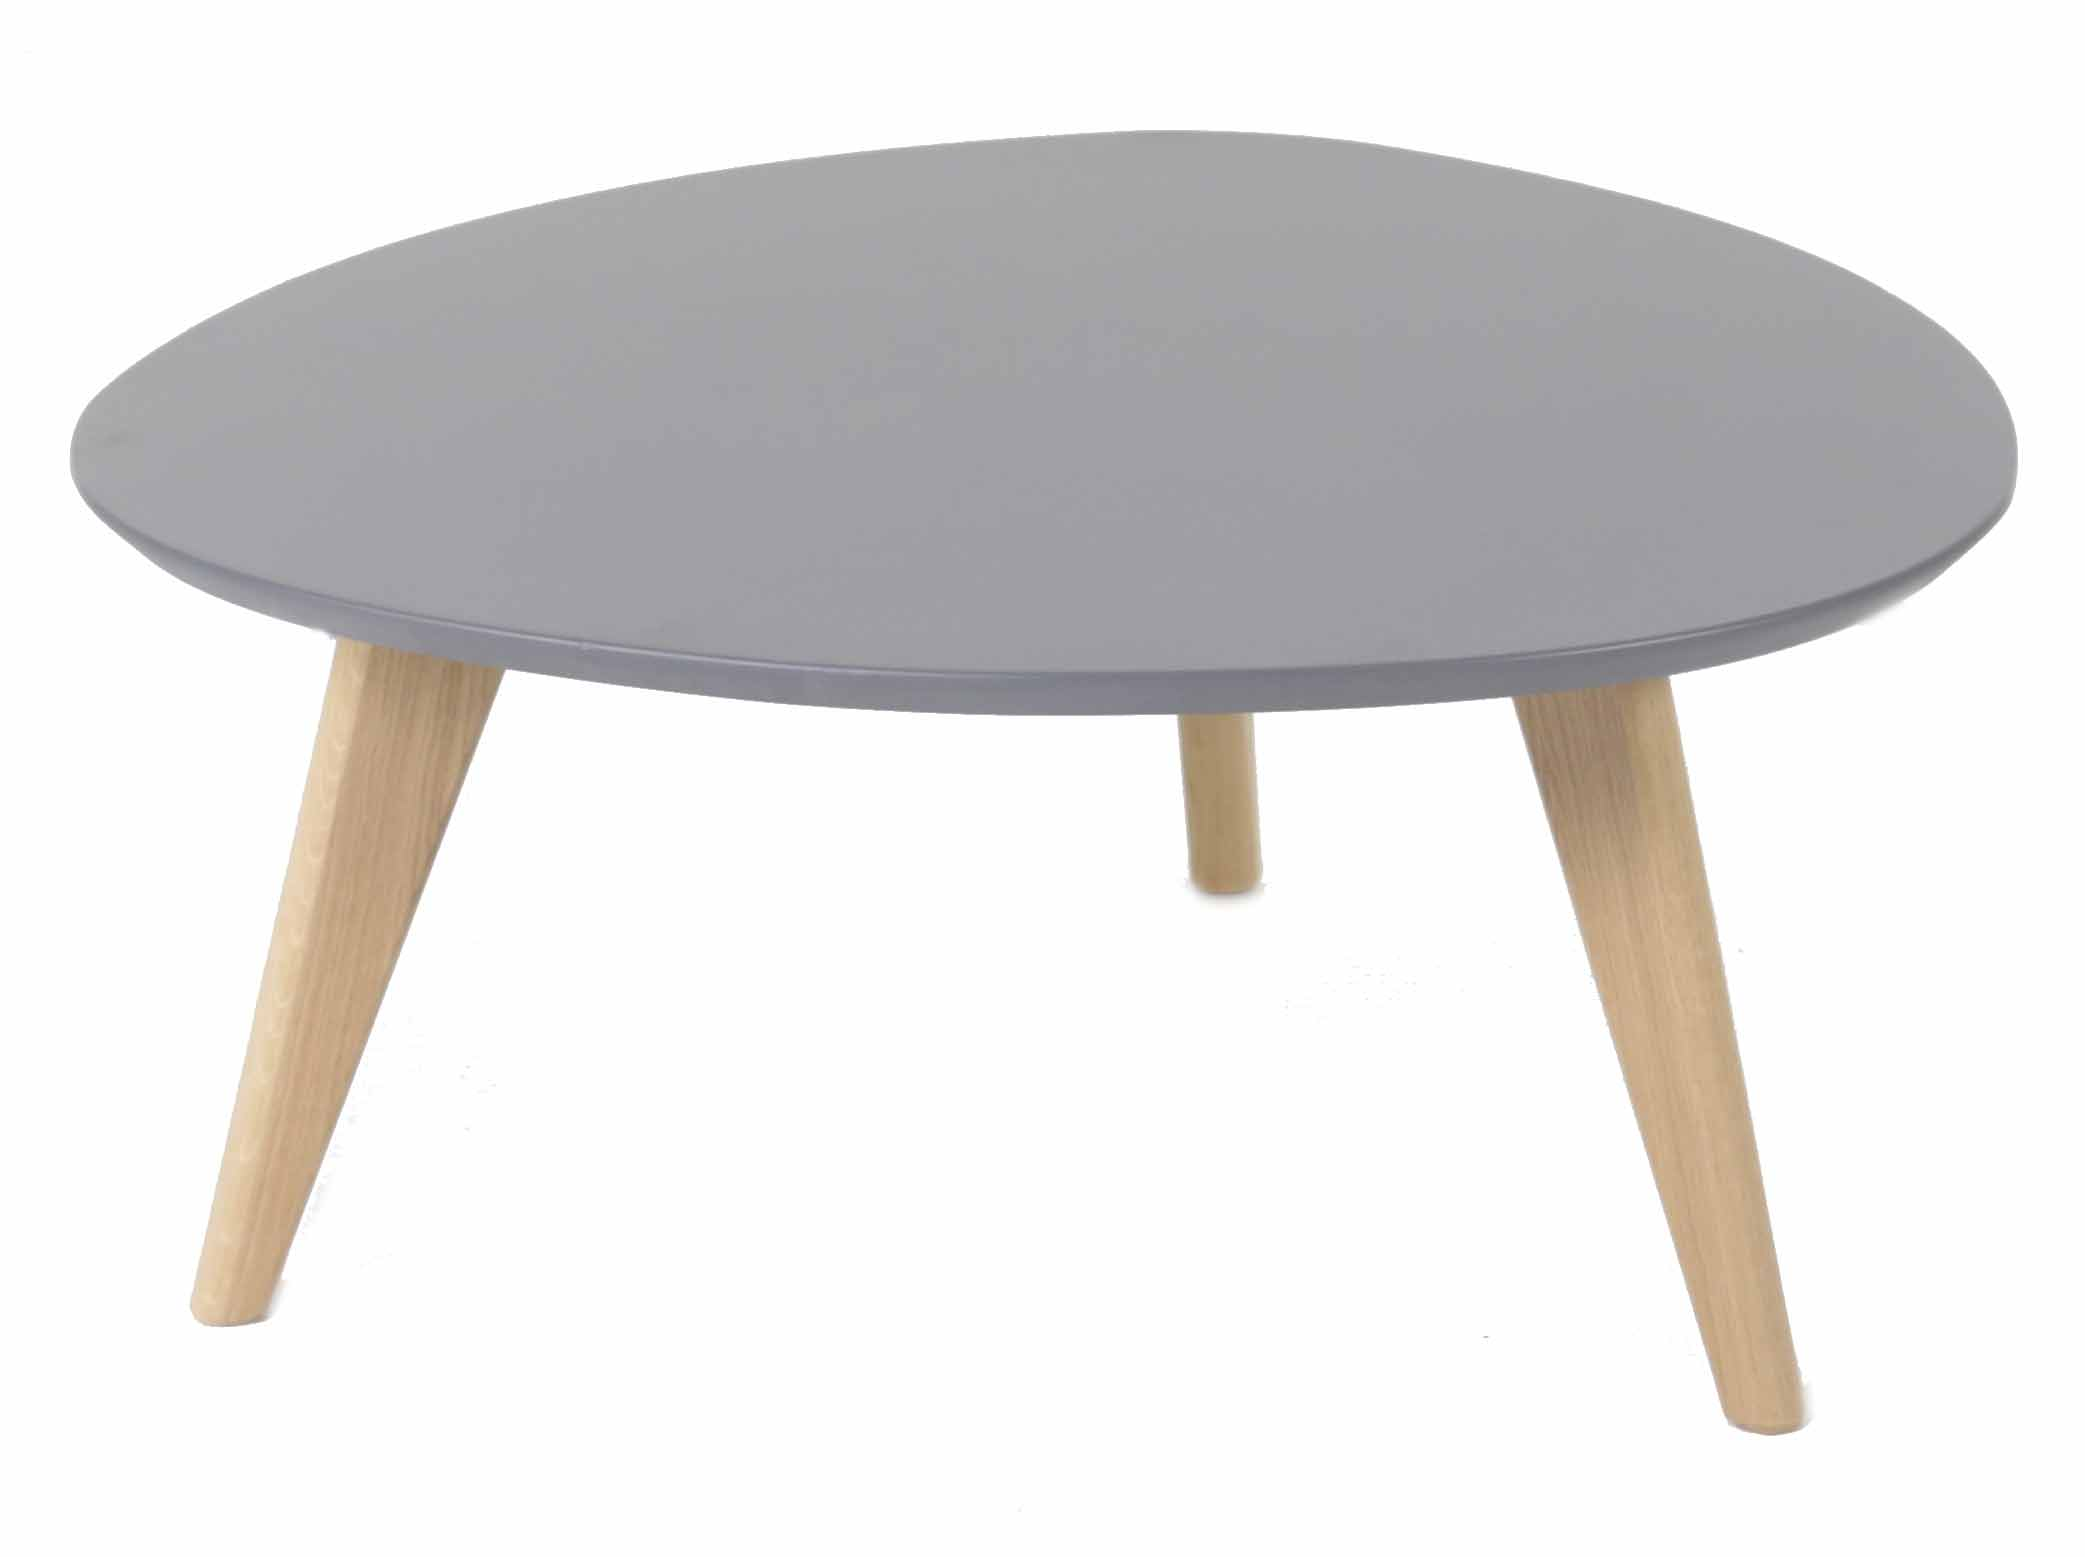 Sejour tables basse table basse ronde plateau gris for Table ronde sejour